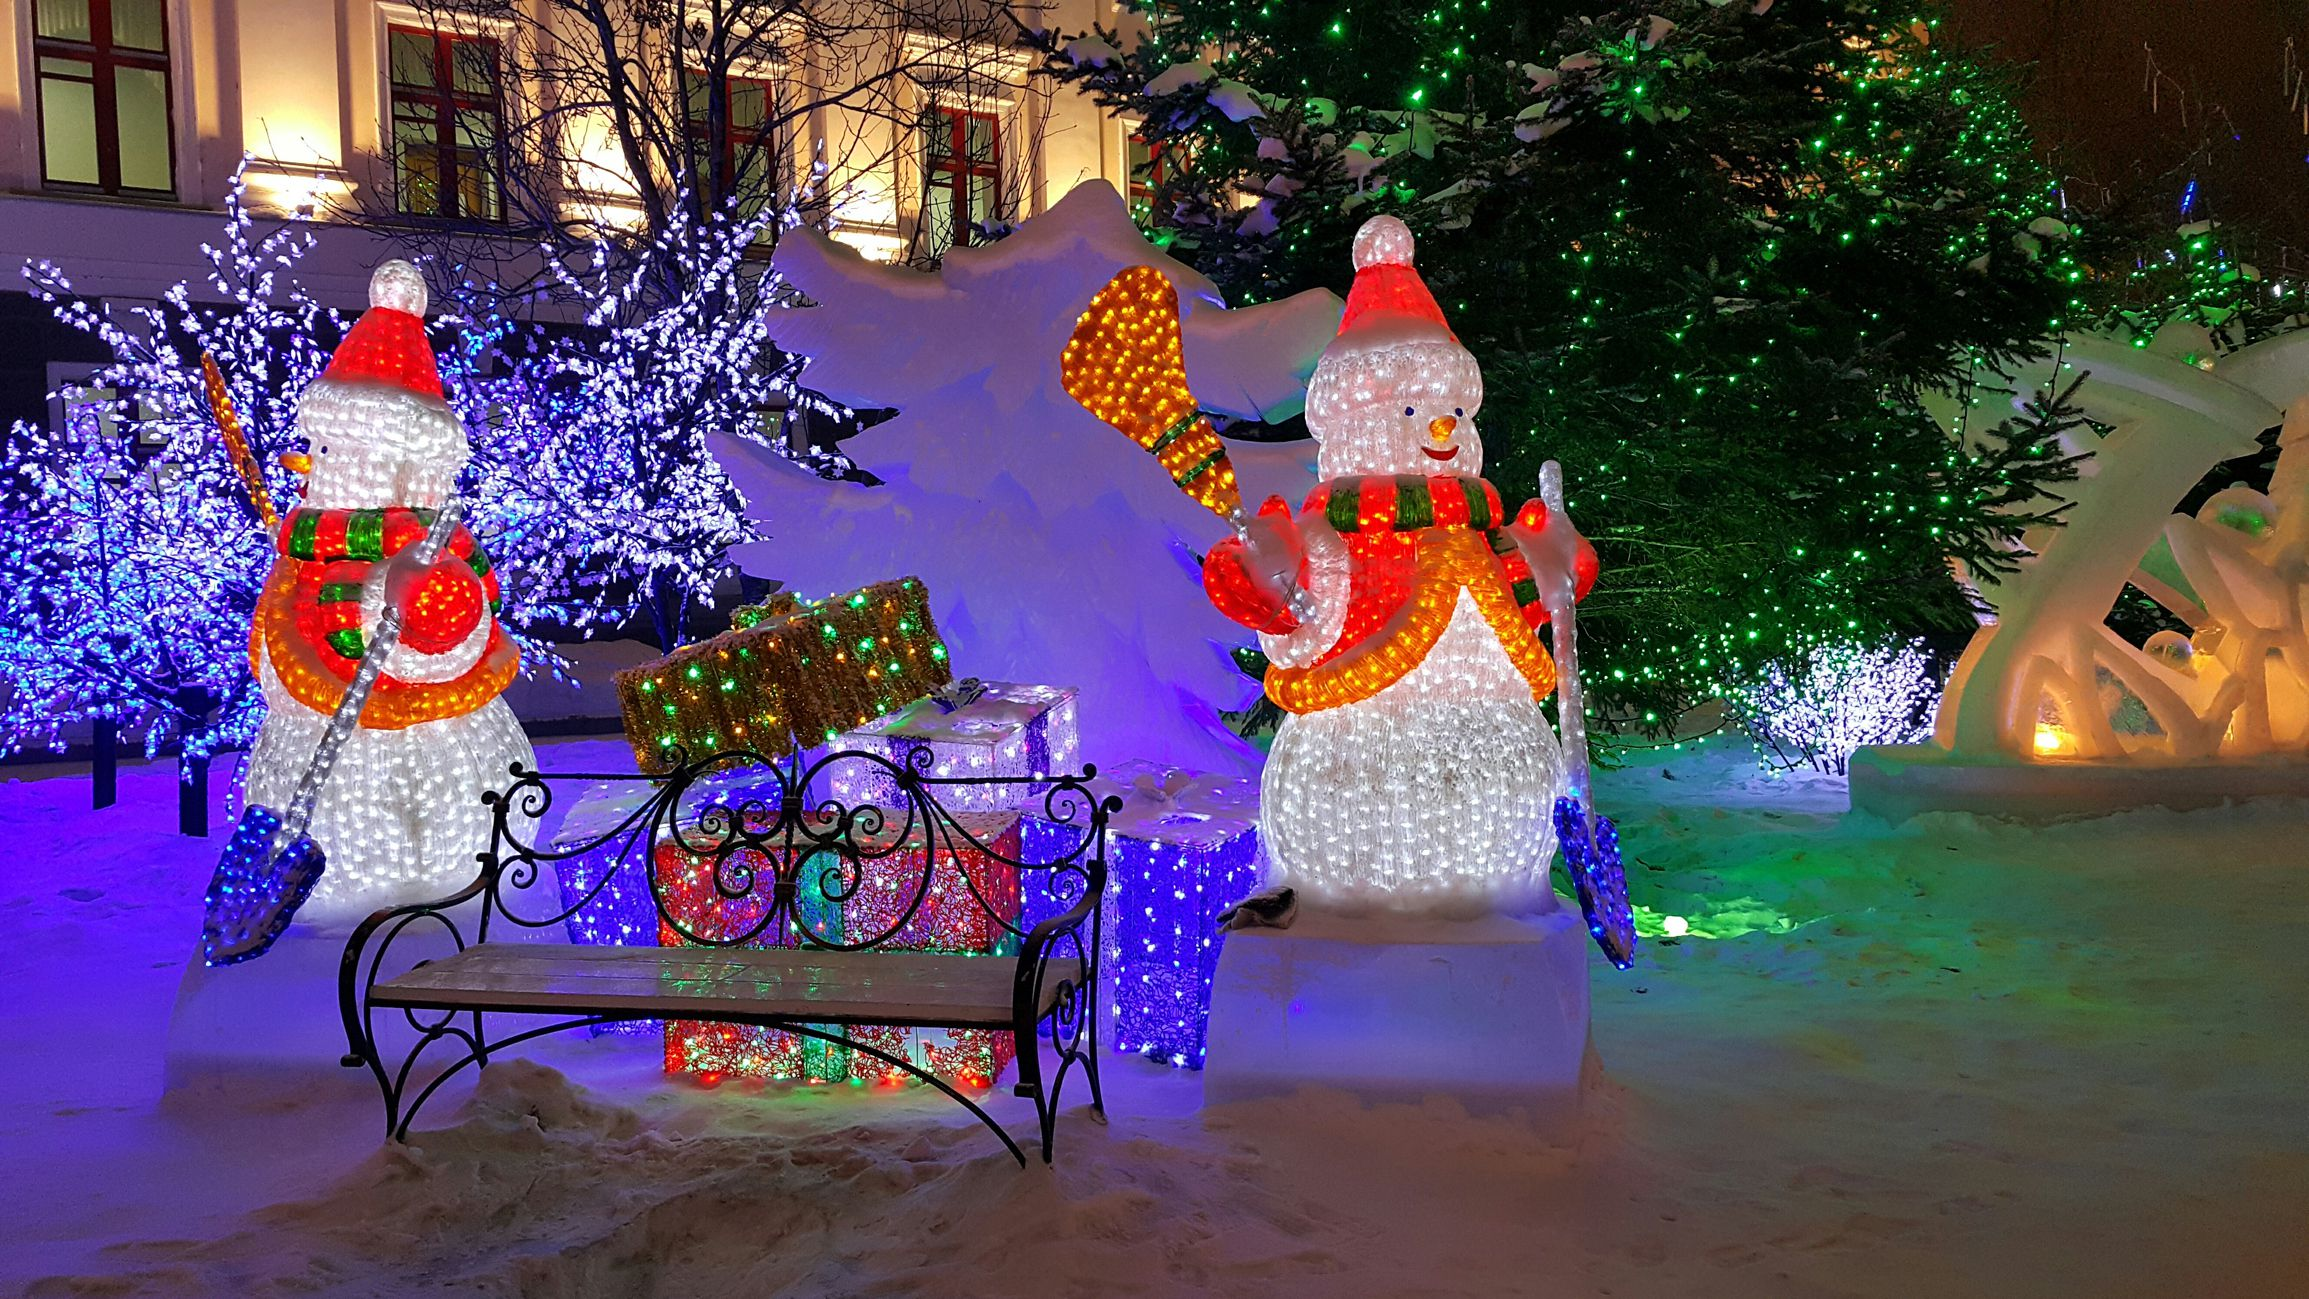 25 outdoor christmas decoration ideas in pictures - Santa Train Outdoor Christmas Decoration